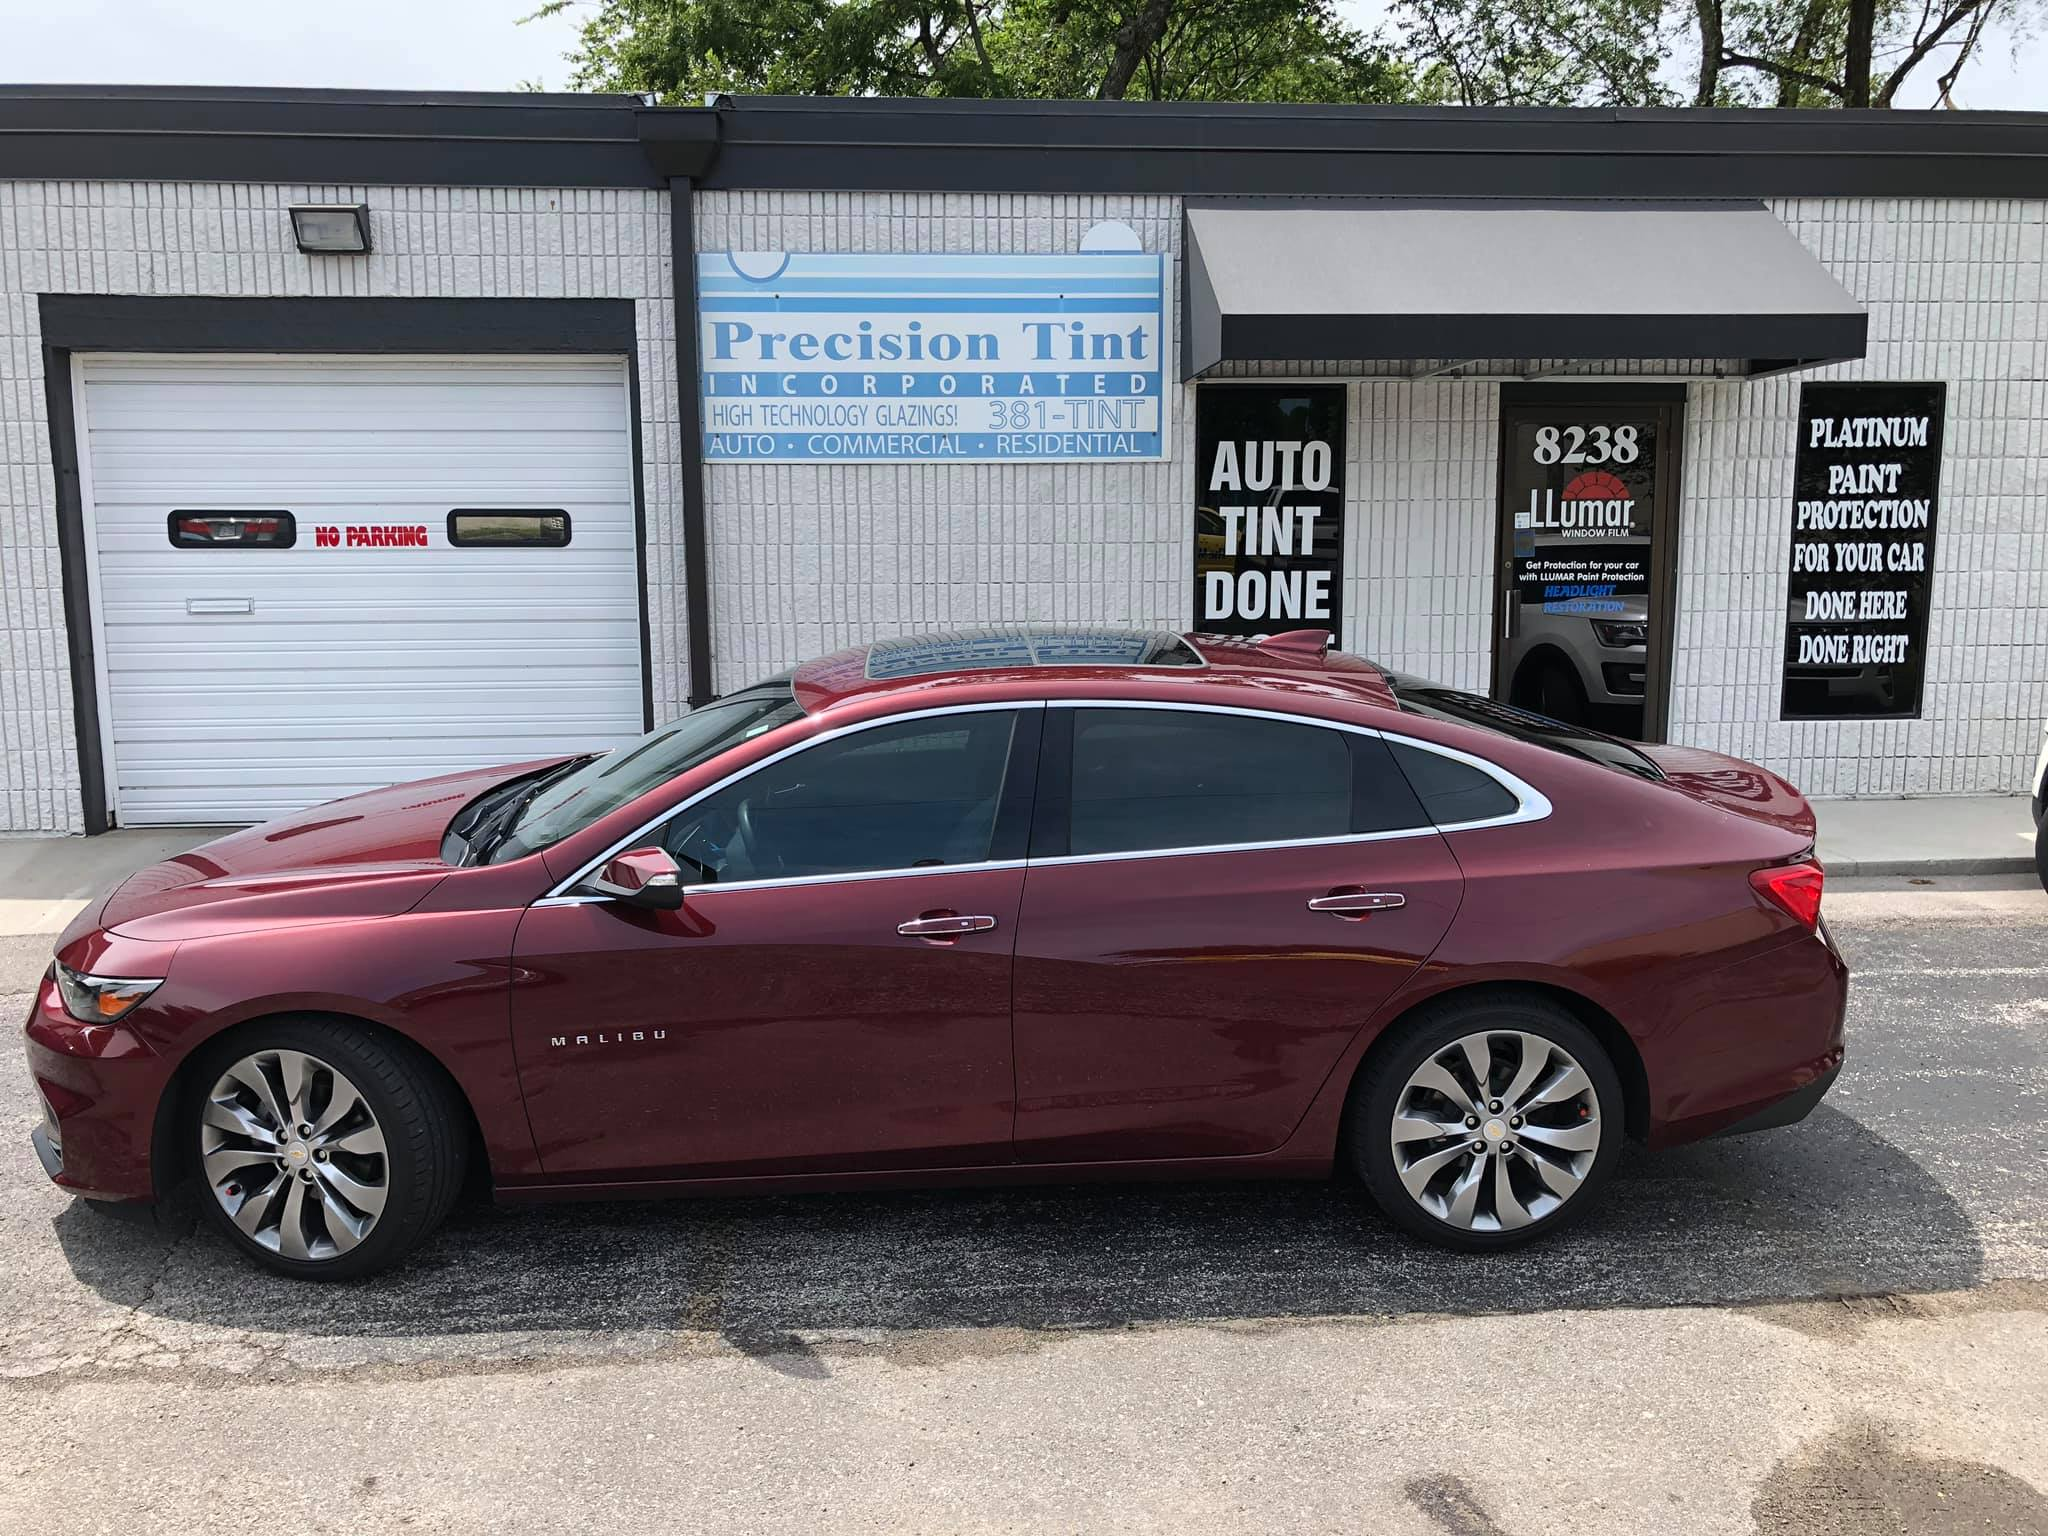 precision tint automotive window tinting kansas city chevy malibu